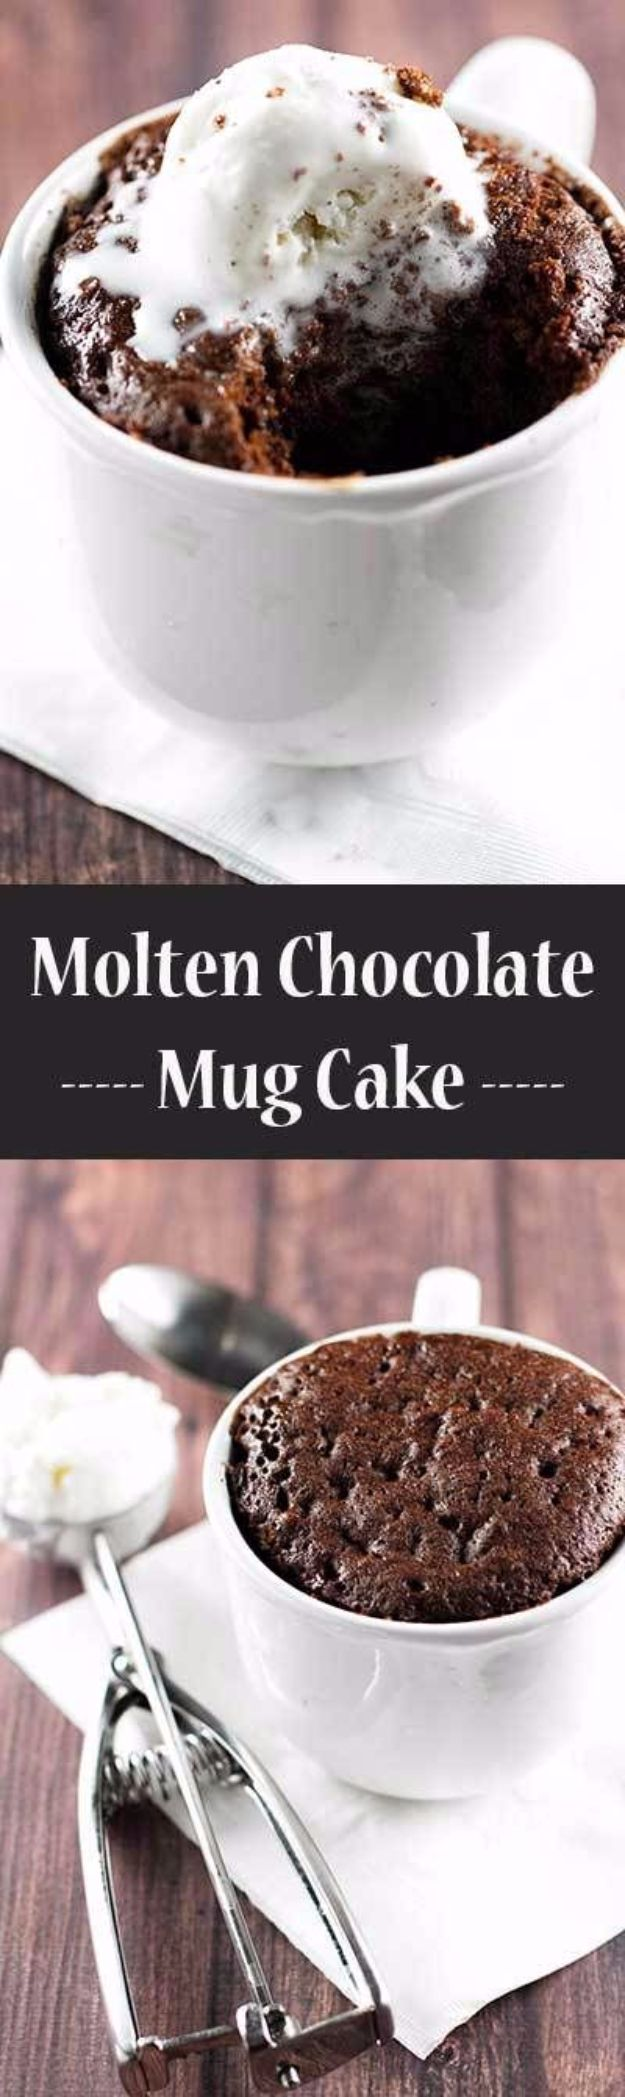 Easy Snacks You Can Make In Minutes - Molten Chocolate Mug Cake - Quick Recipes and Tricks for Making After Workout and After School Snack - Fast Ideas for Instant Small Meals and Treats - No Bake, Microwave and Simple Prep Makes Snacking Fun http://diyjoy.com/easy-snacks- recipes